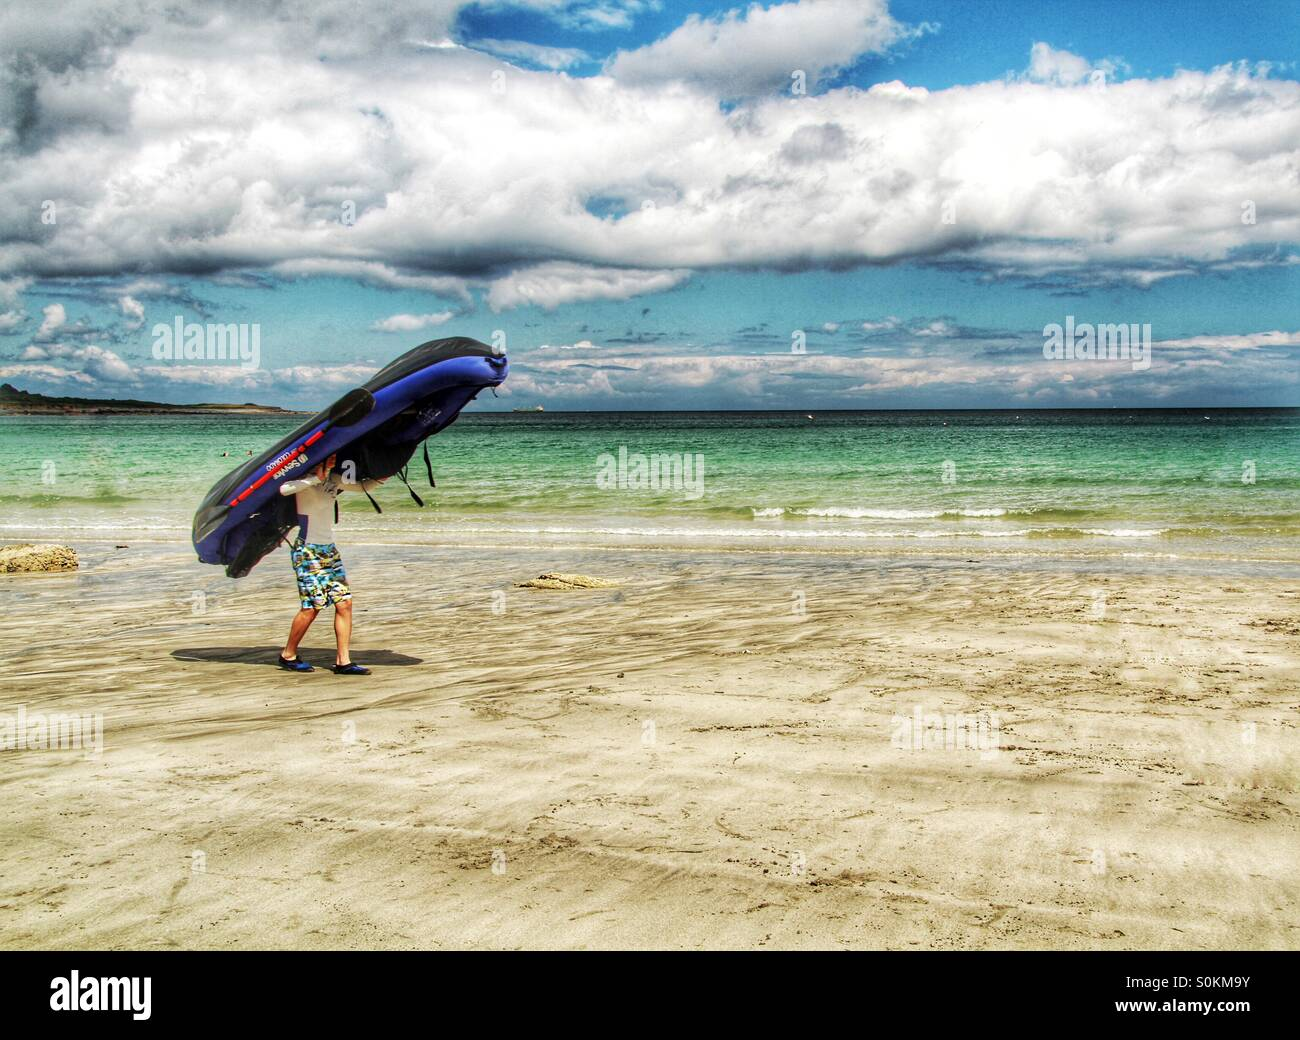 A boy carrying an inflatable dinghy on his head as he is walking along a sandy beach on a summer's day. - Stock Image